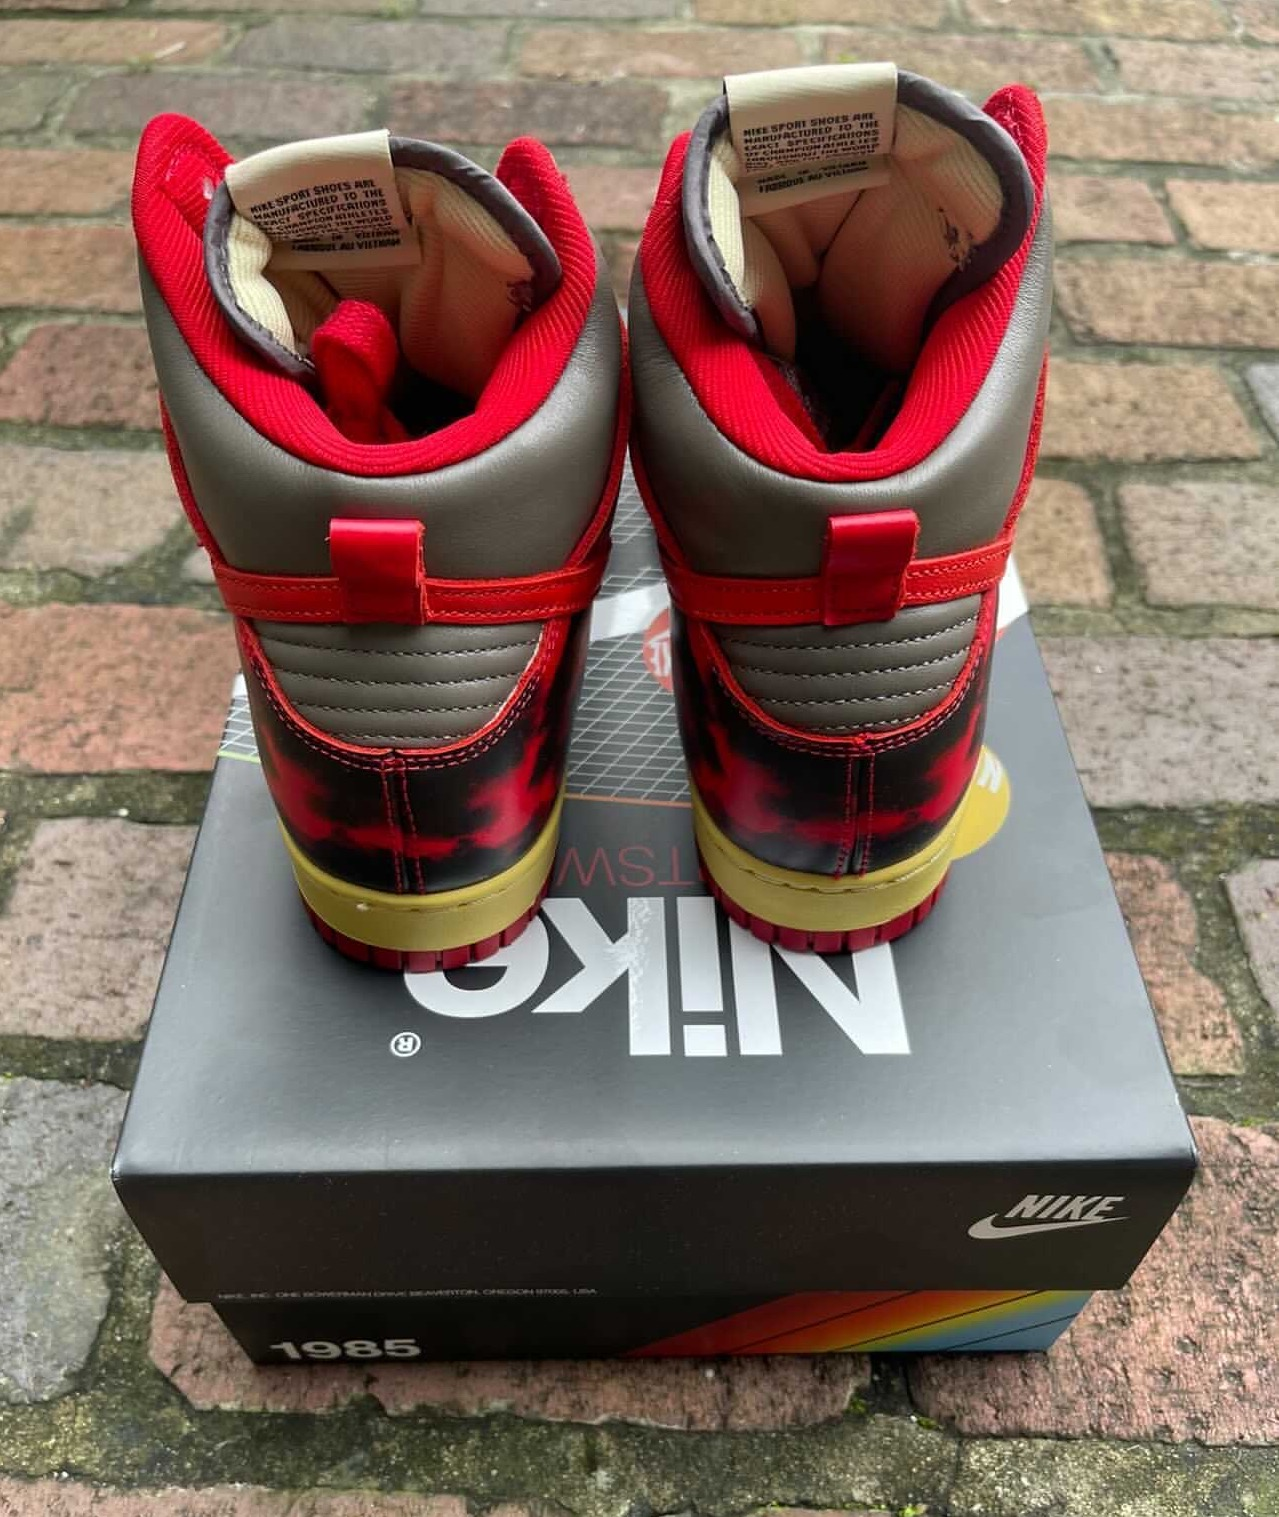 Nike Dunk High 1985 Red Acid Wash DD9404-600 Release Date Price